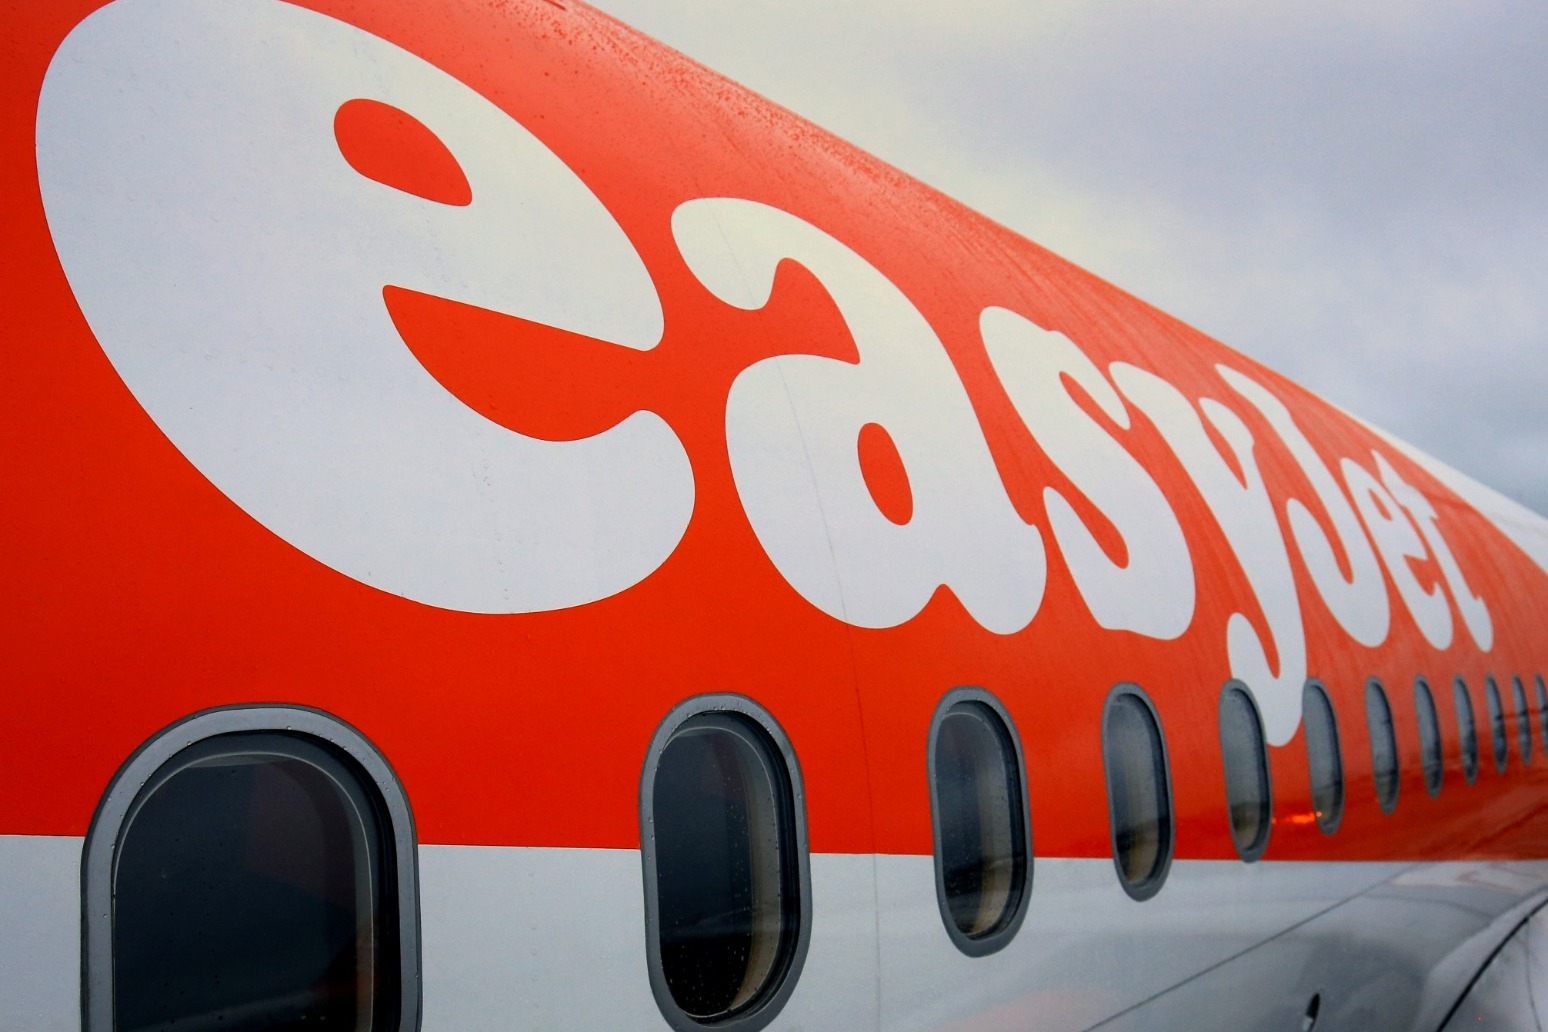 EasyJet to 'ramp up' flights from late May for summer holidays